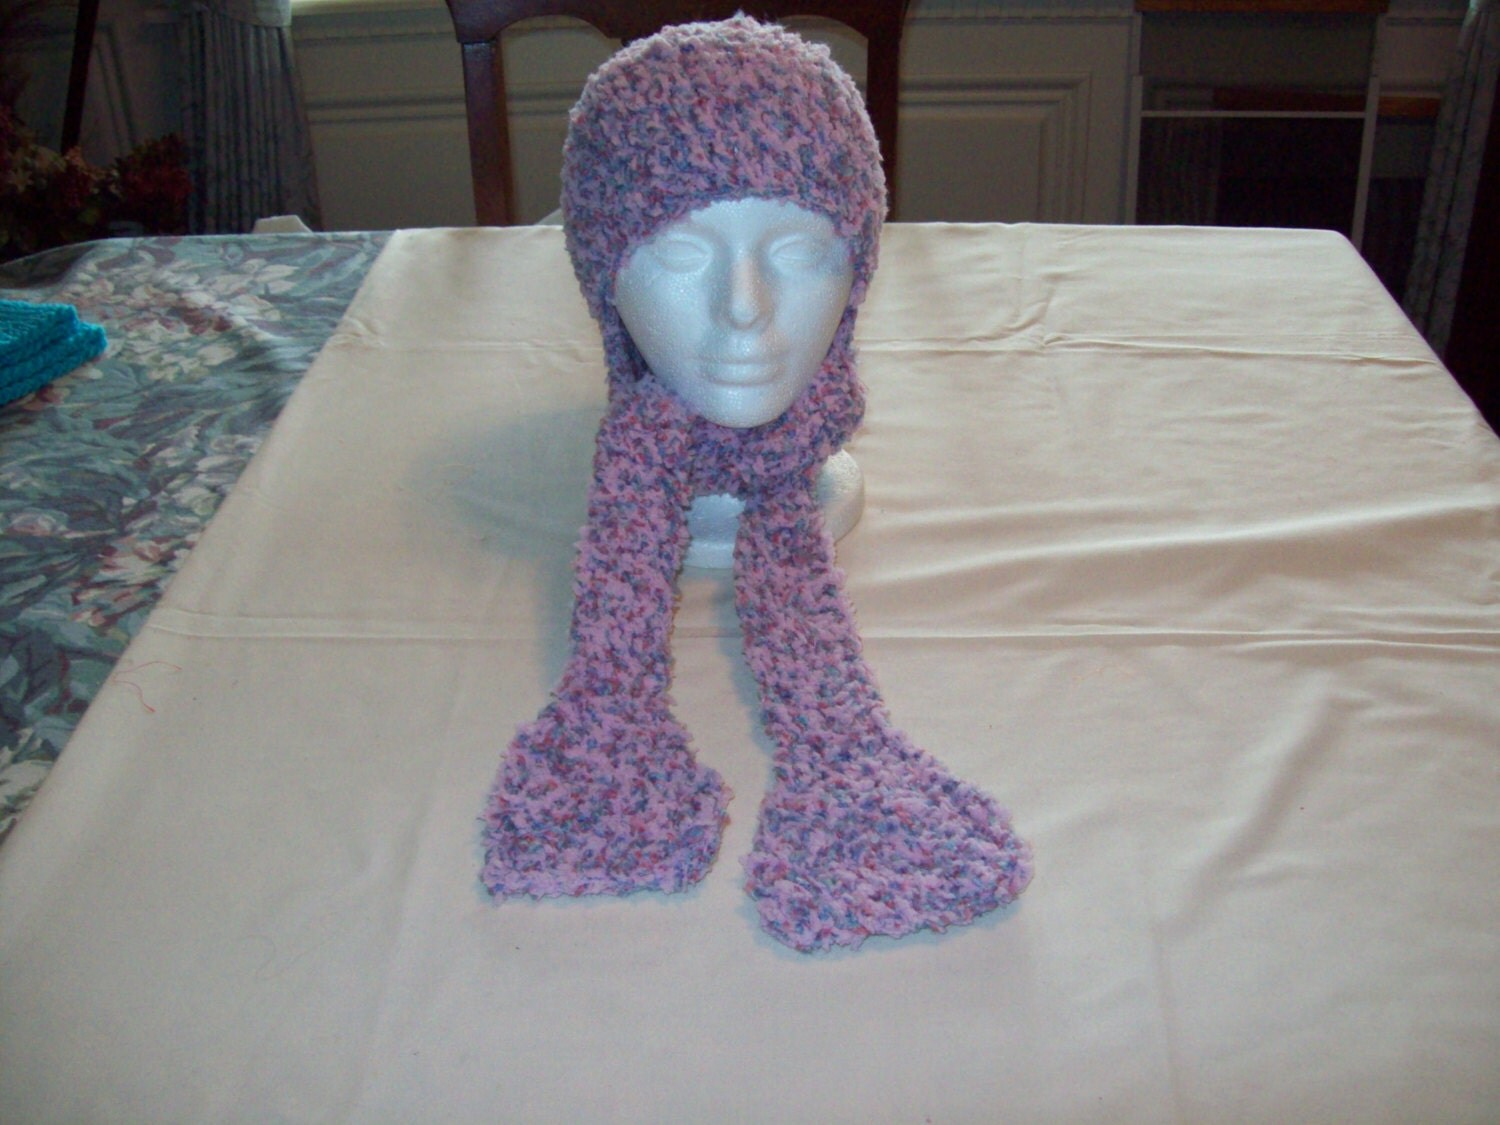 Crochet Pattern Hat Scarf Combo : Soft bulky crocheted hat and scarf combo by pmcglone on Etsy